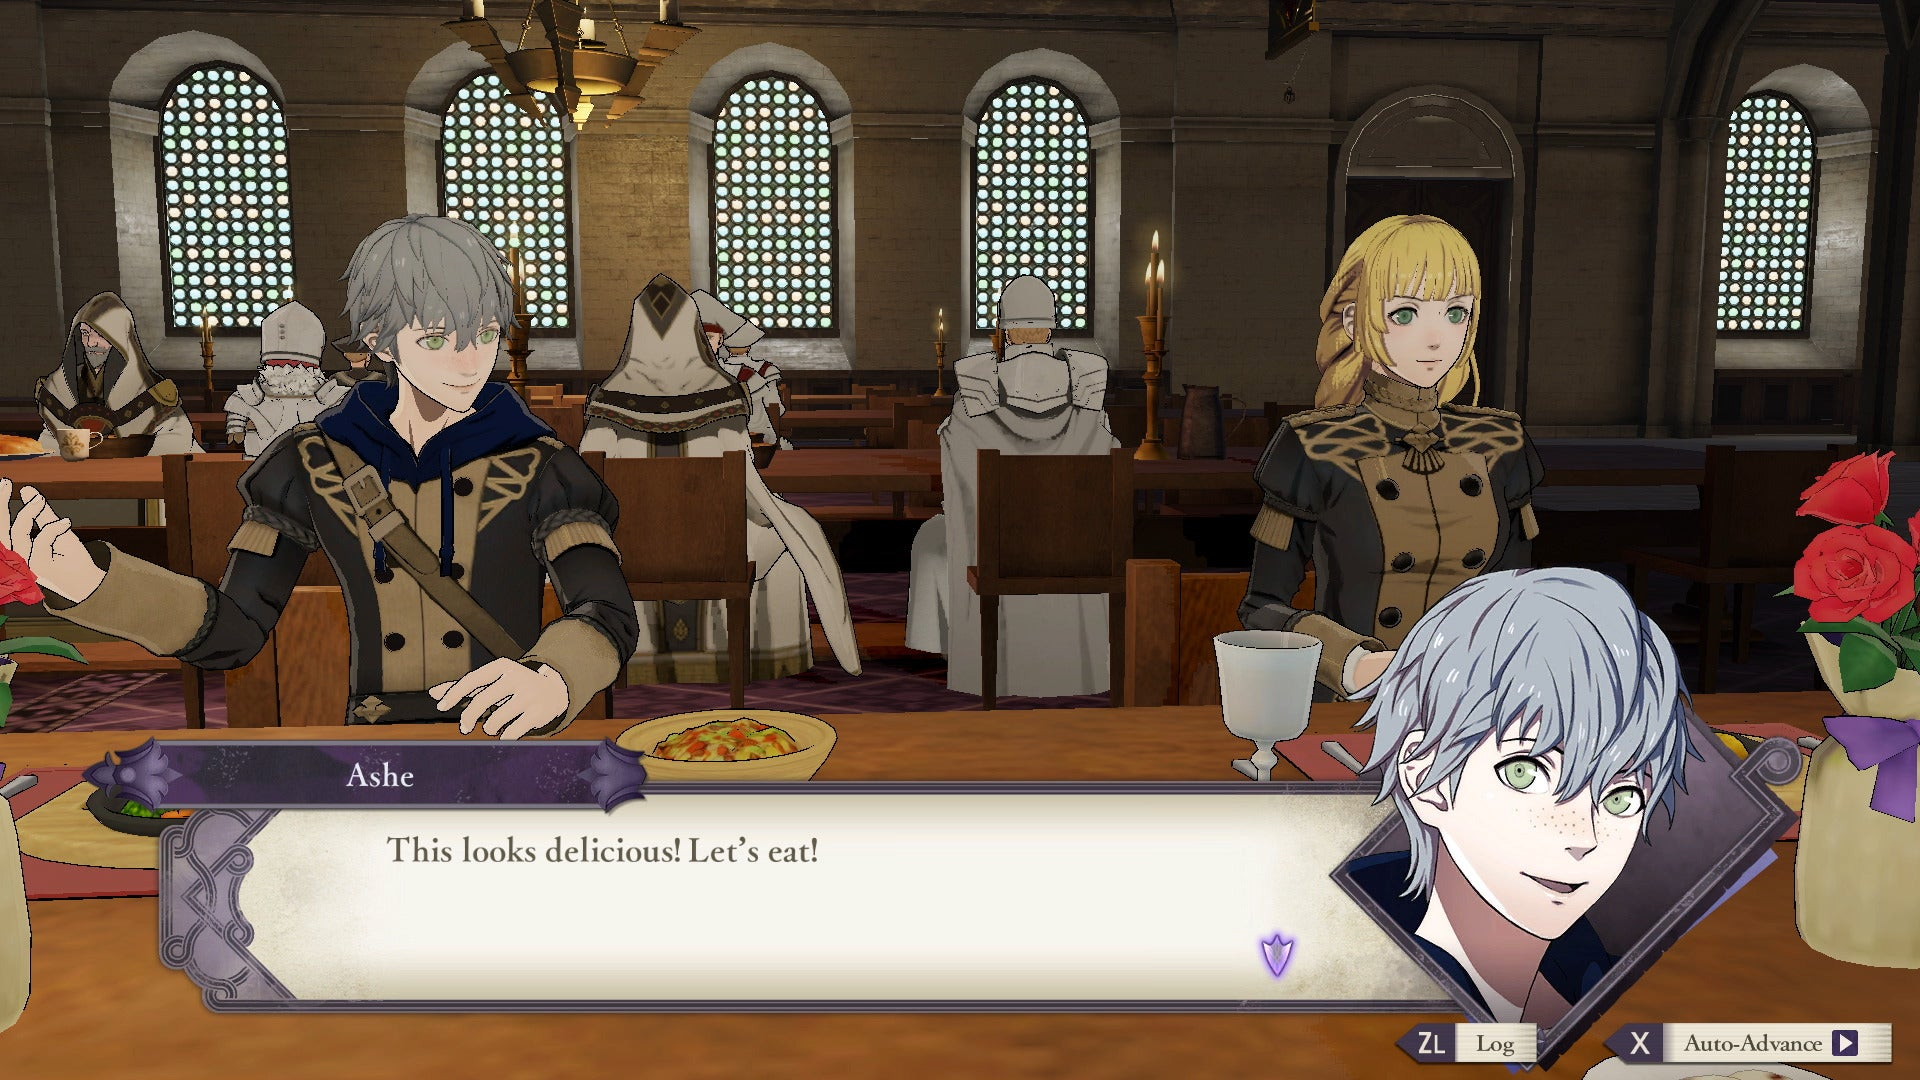 Fan Creates Hilarious, Dead-On Tweets By Fire Emblem: Three Houses Characters